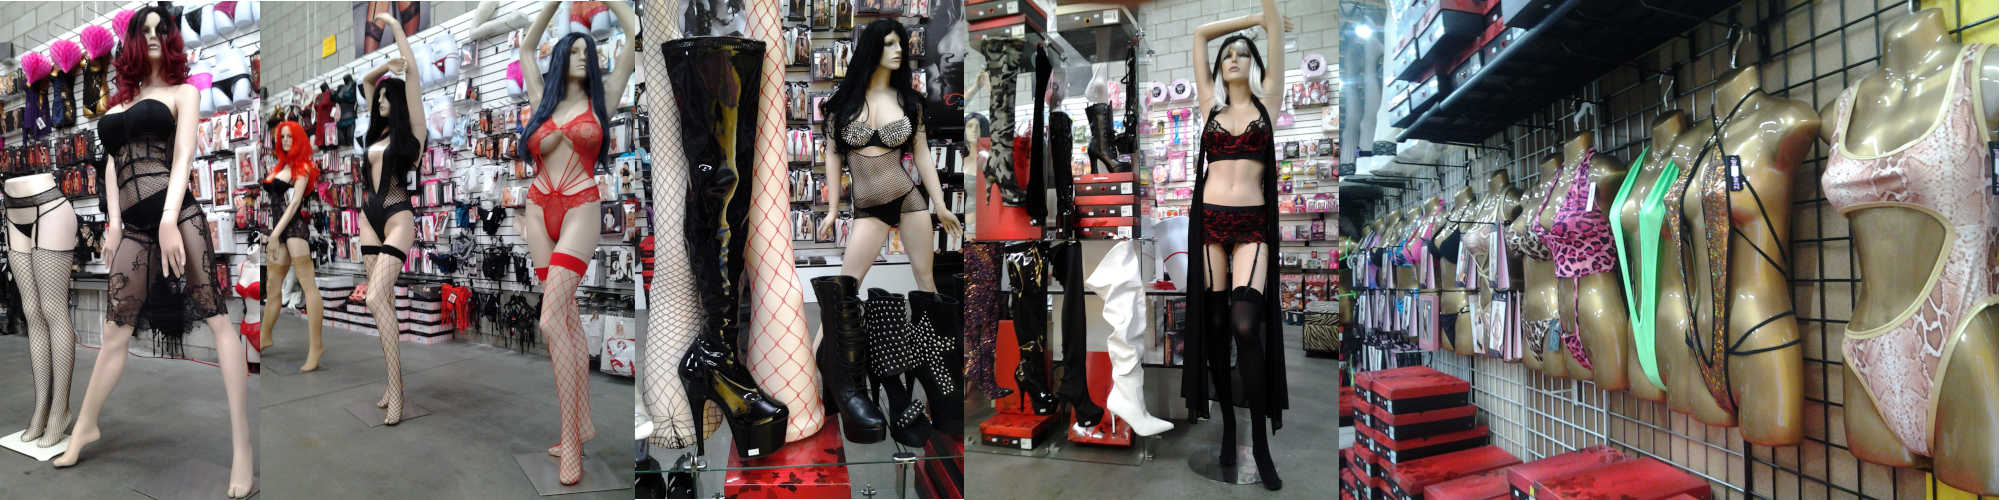 Adult Warehouse Outlet Lingerie